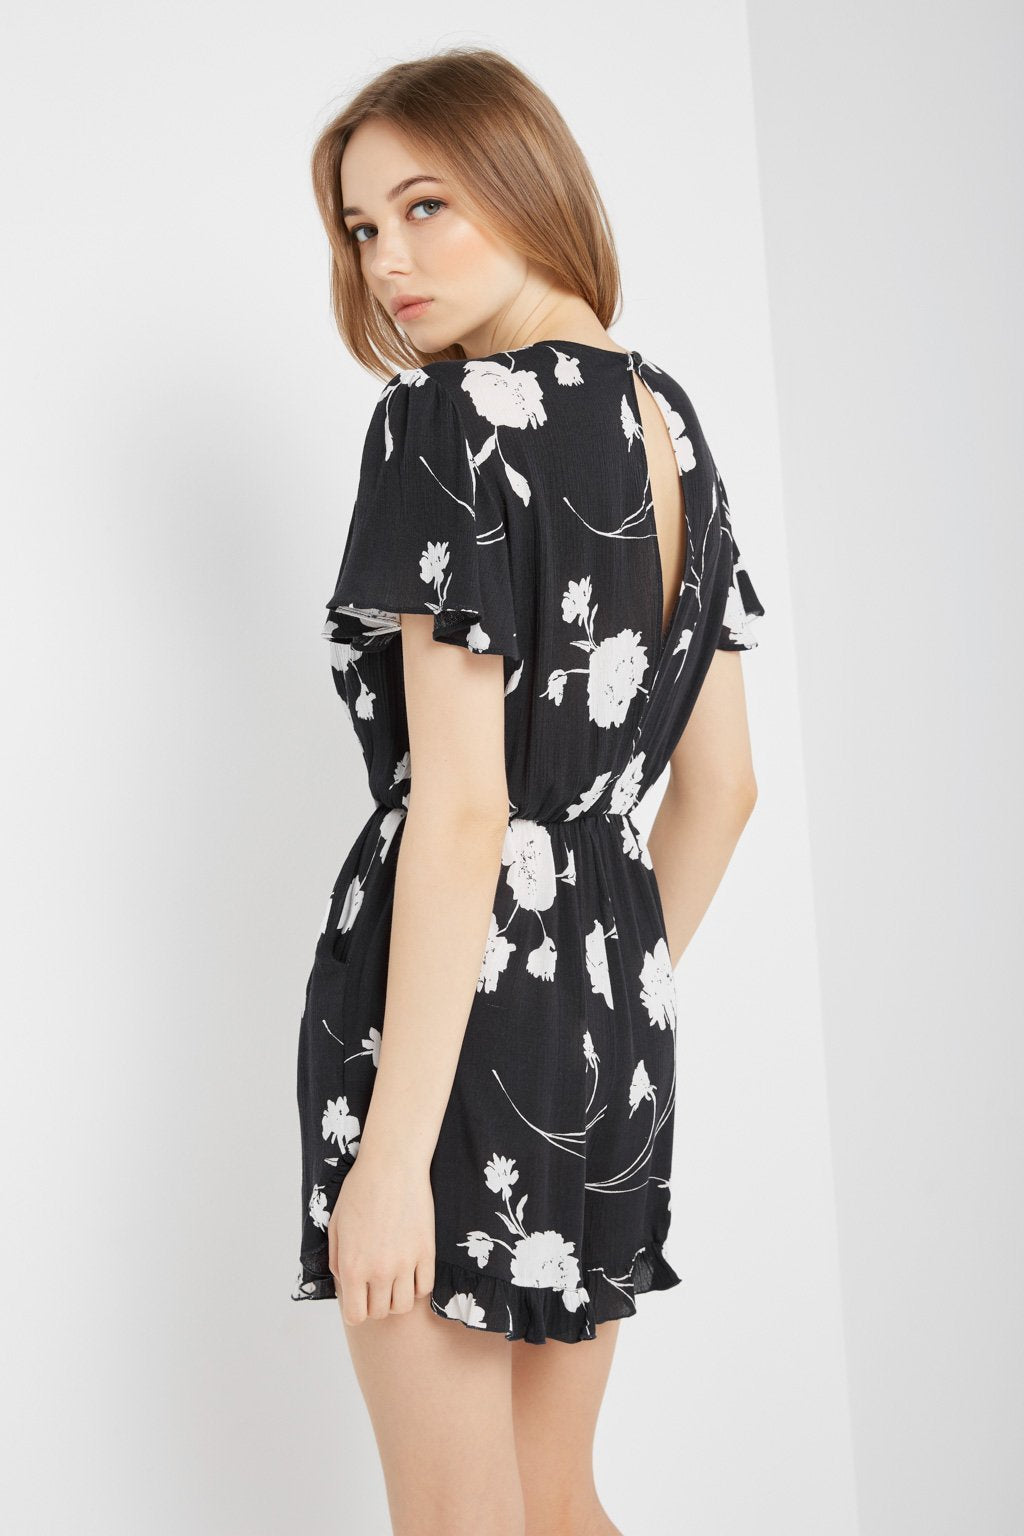 Poshsquare Romper Floral Knot-Front Romper